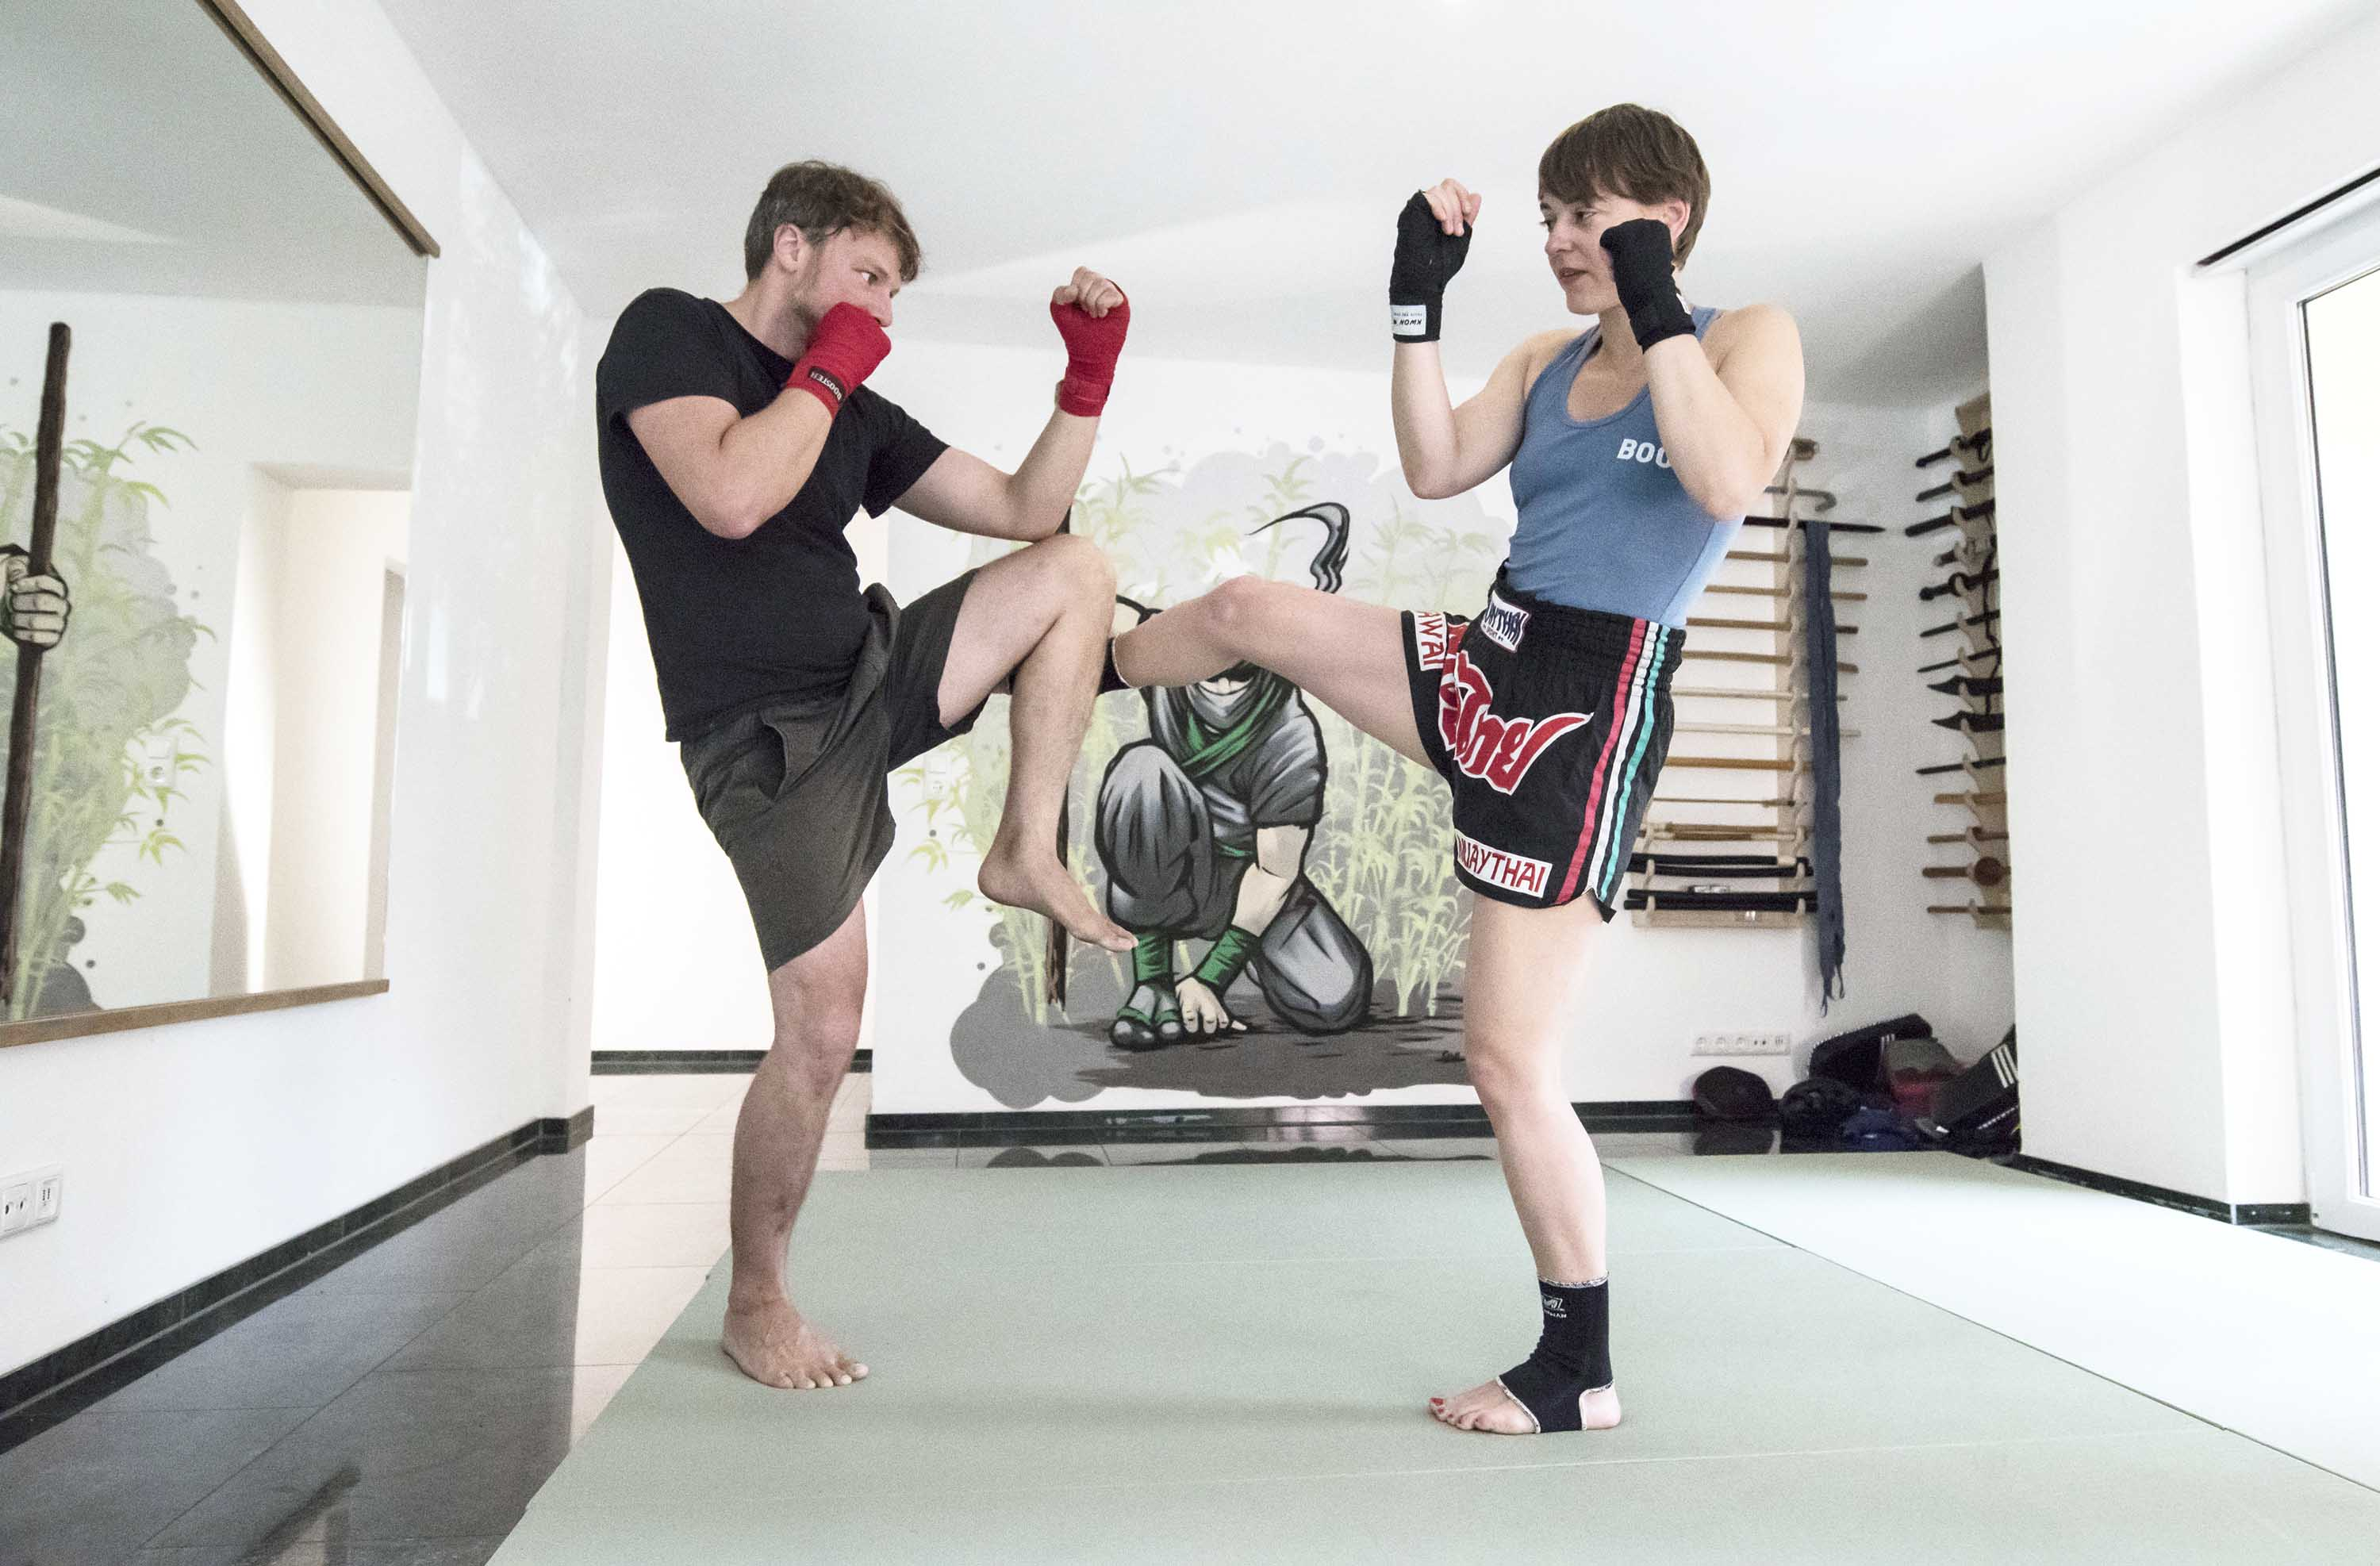 RONIN_DOJO_Traditionelles_thaiboxen_Training_07